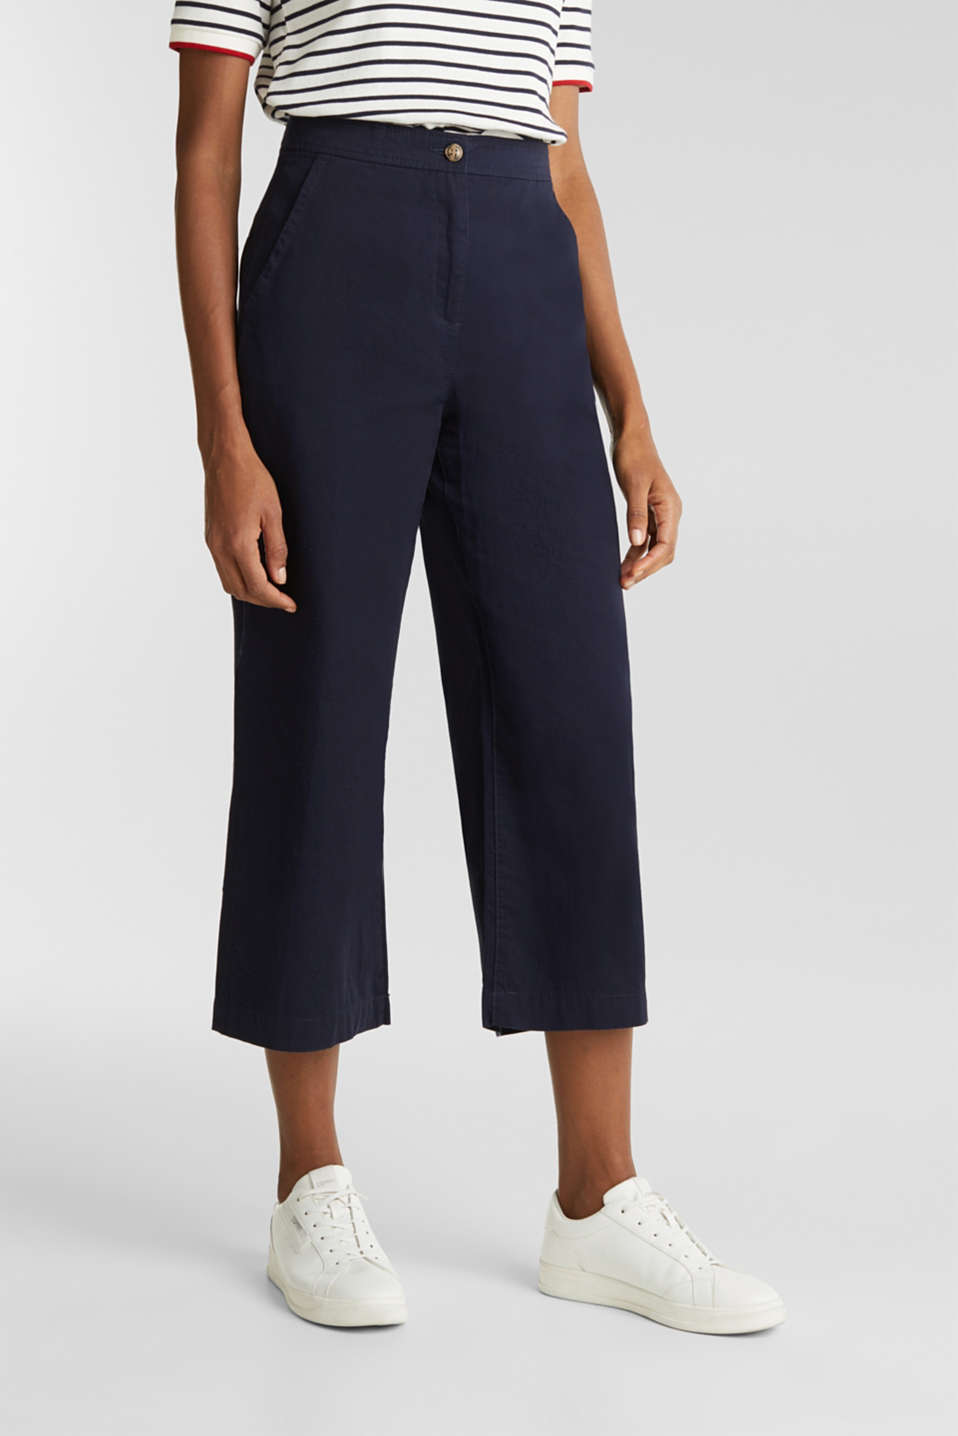 Sporty culottes, 100% cotton, NAVY, detail image number 7